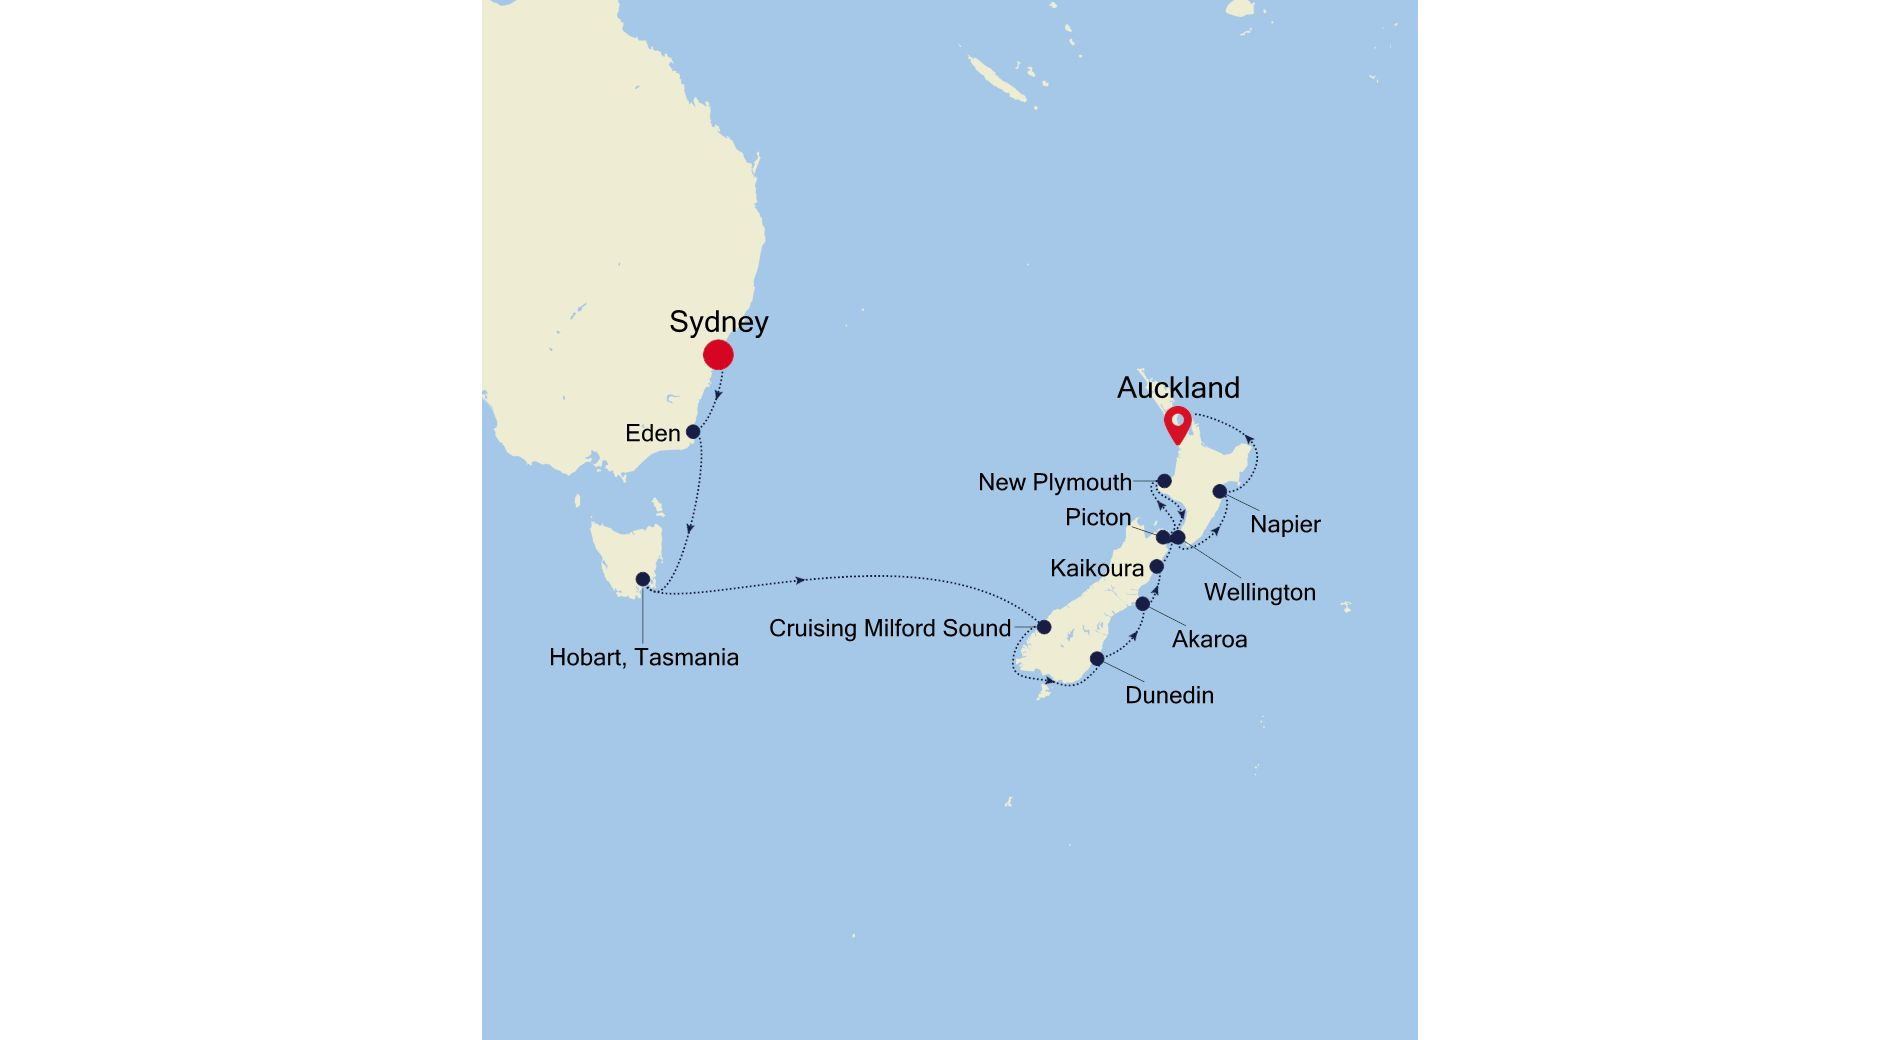 SS220203015 - Sydney to Auckland